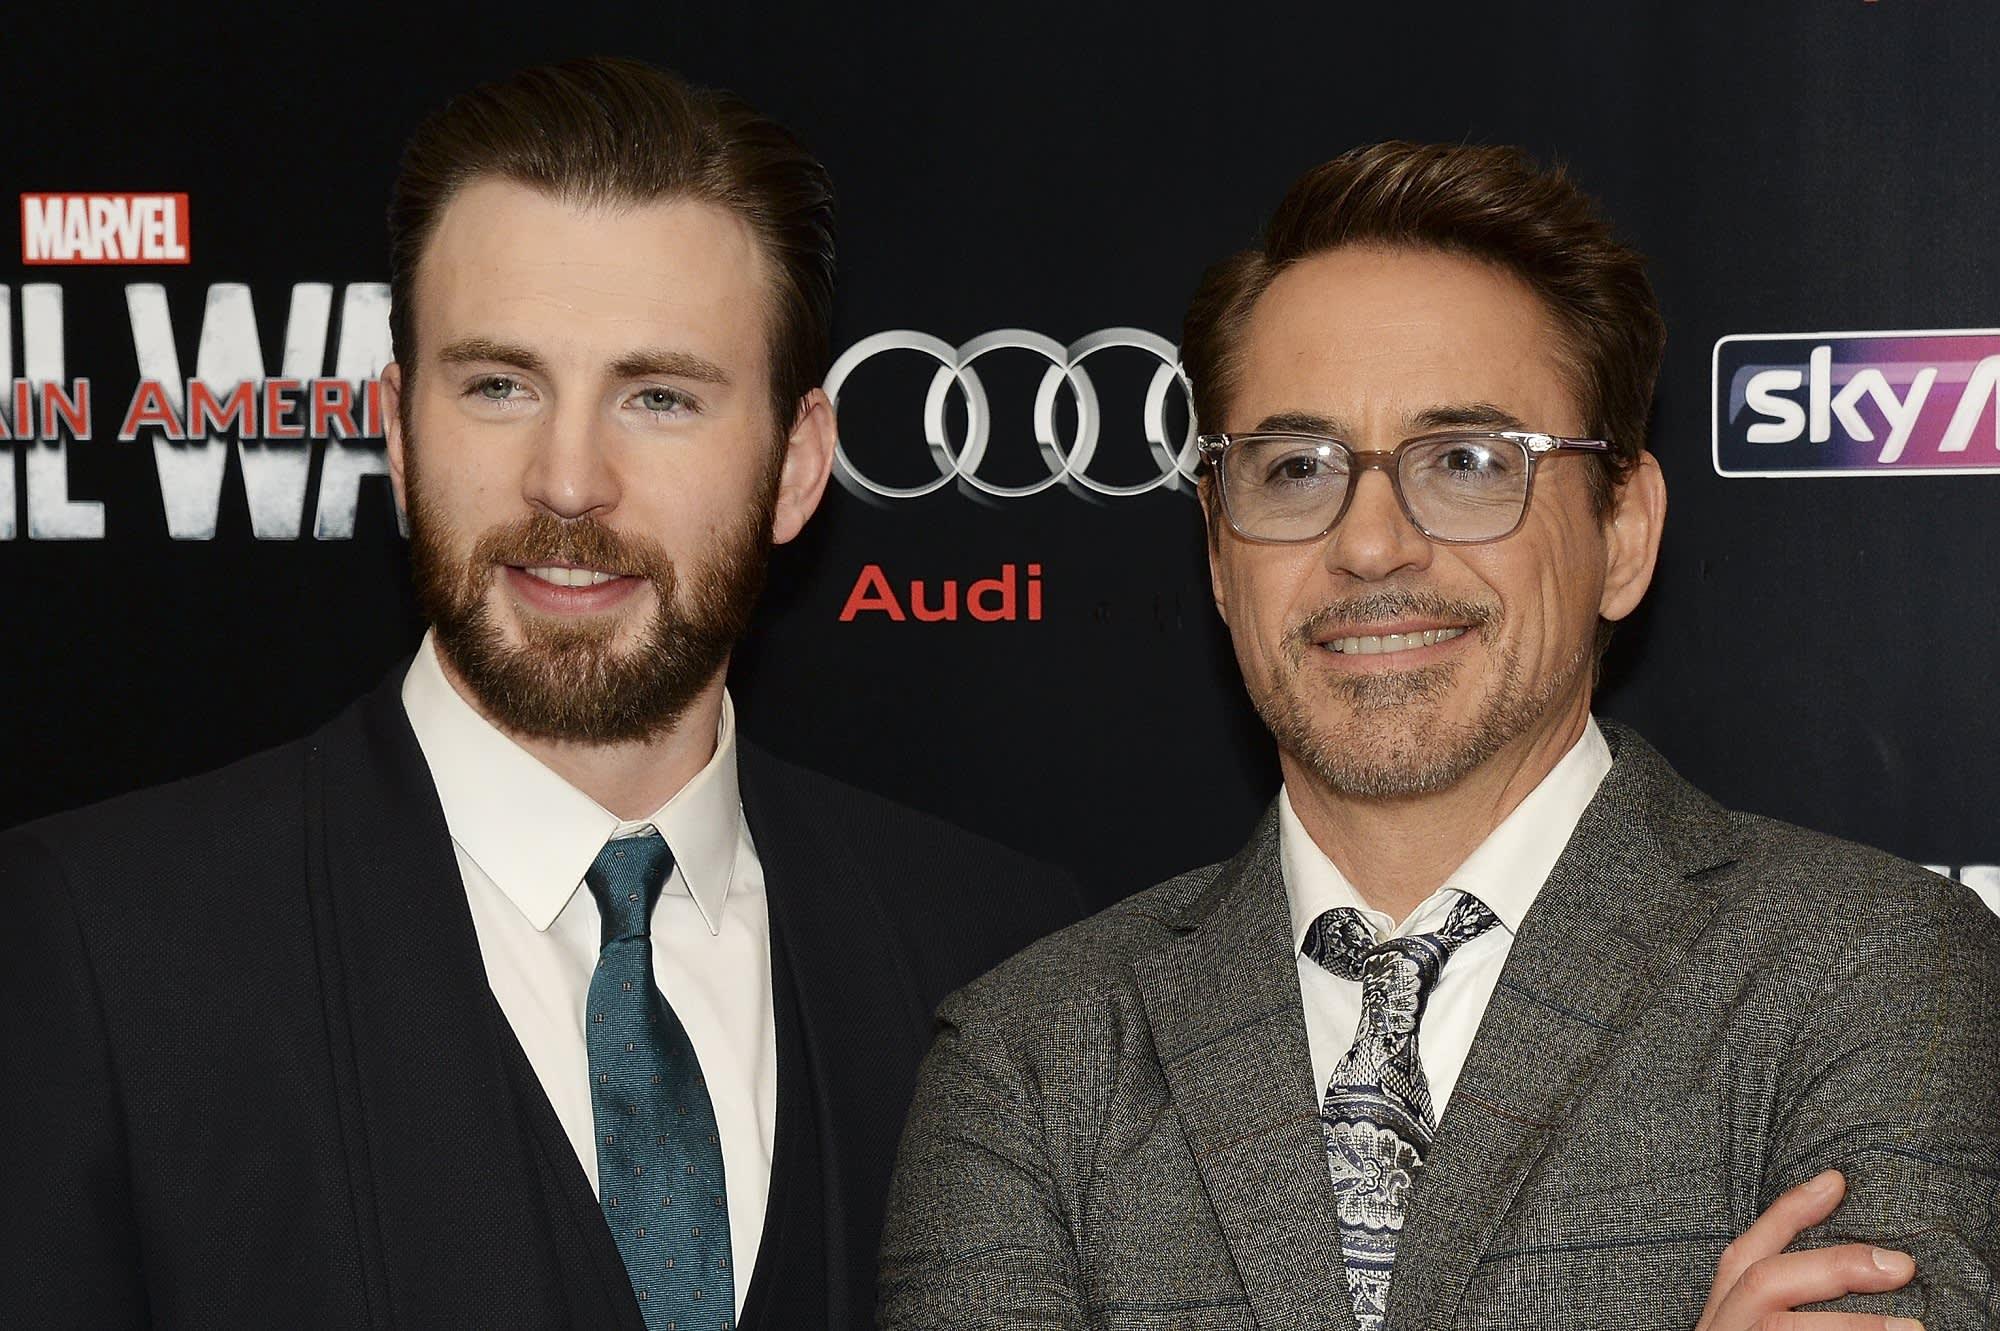 Check out this $275,000 'Avengers'-themed car Robert Downey Jr. gave Chris Evans